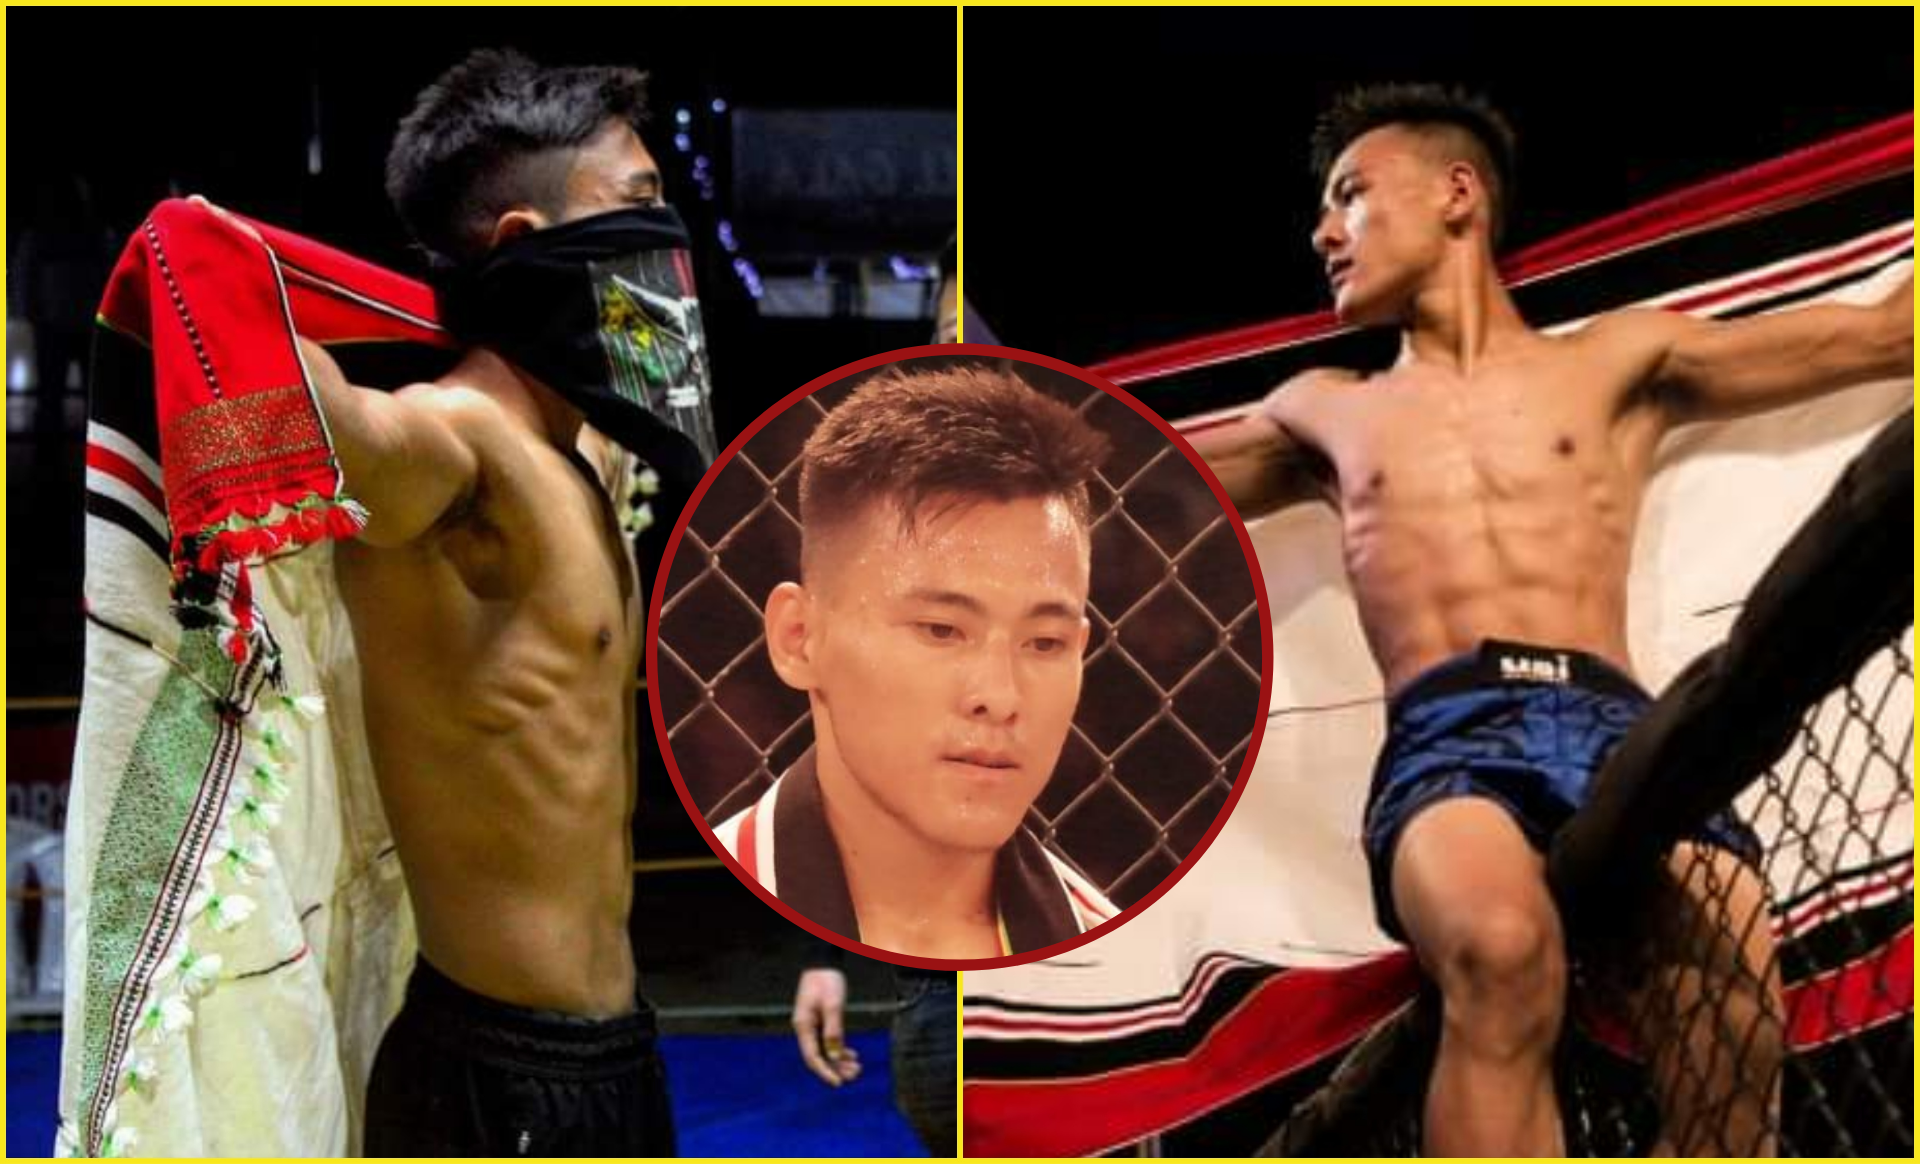 Meet Mairidin Newmai, who is a teacher by day and MMA fighter by night - Mairidin Newmai